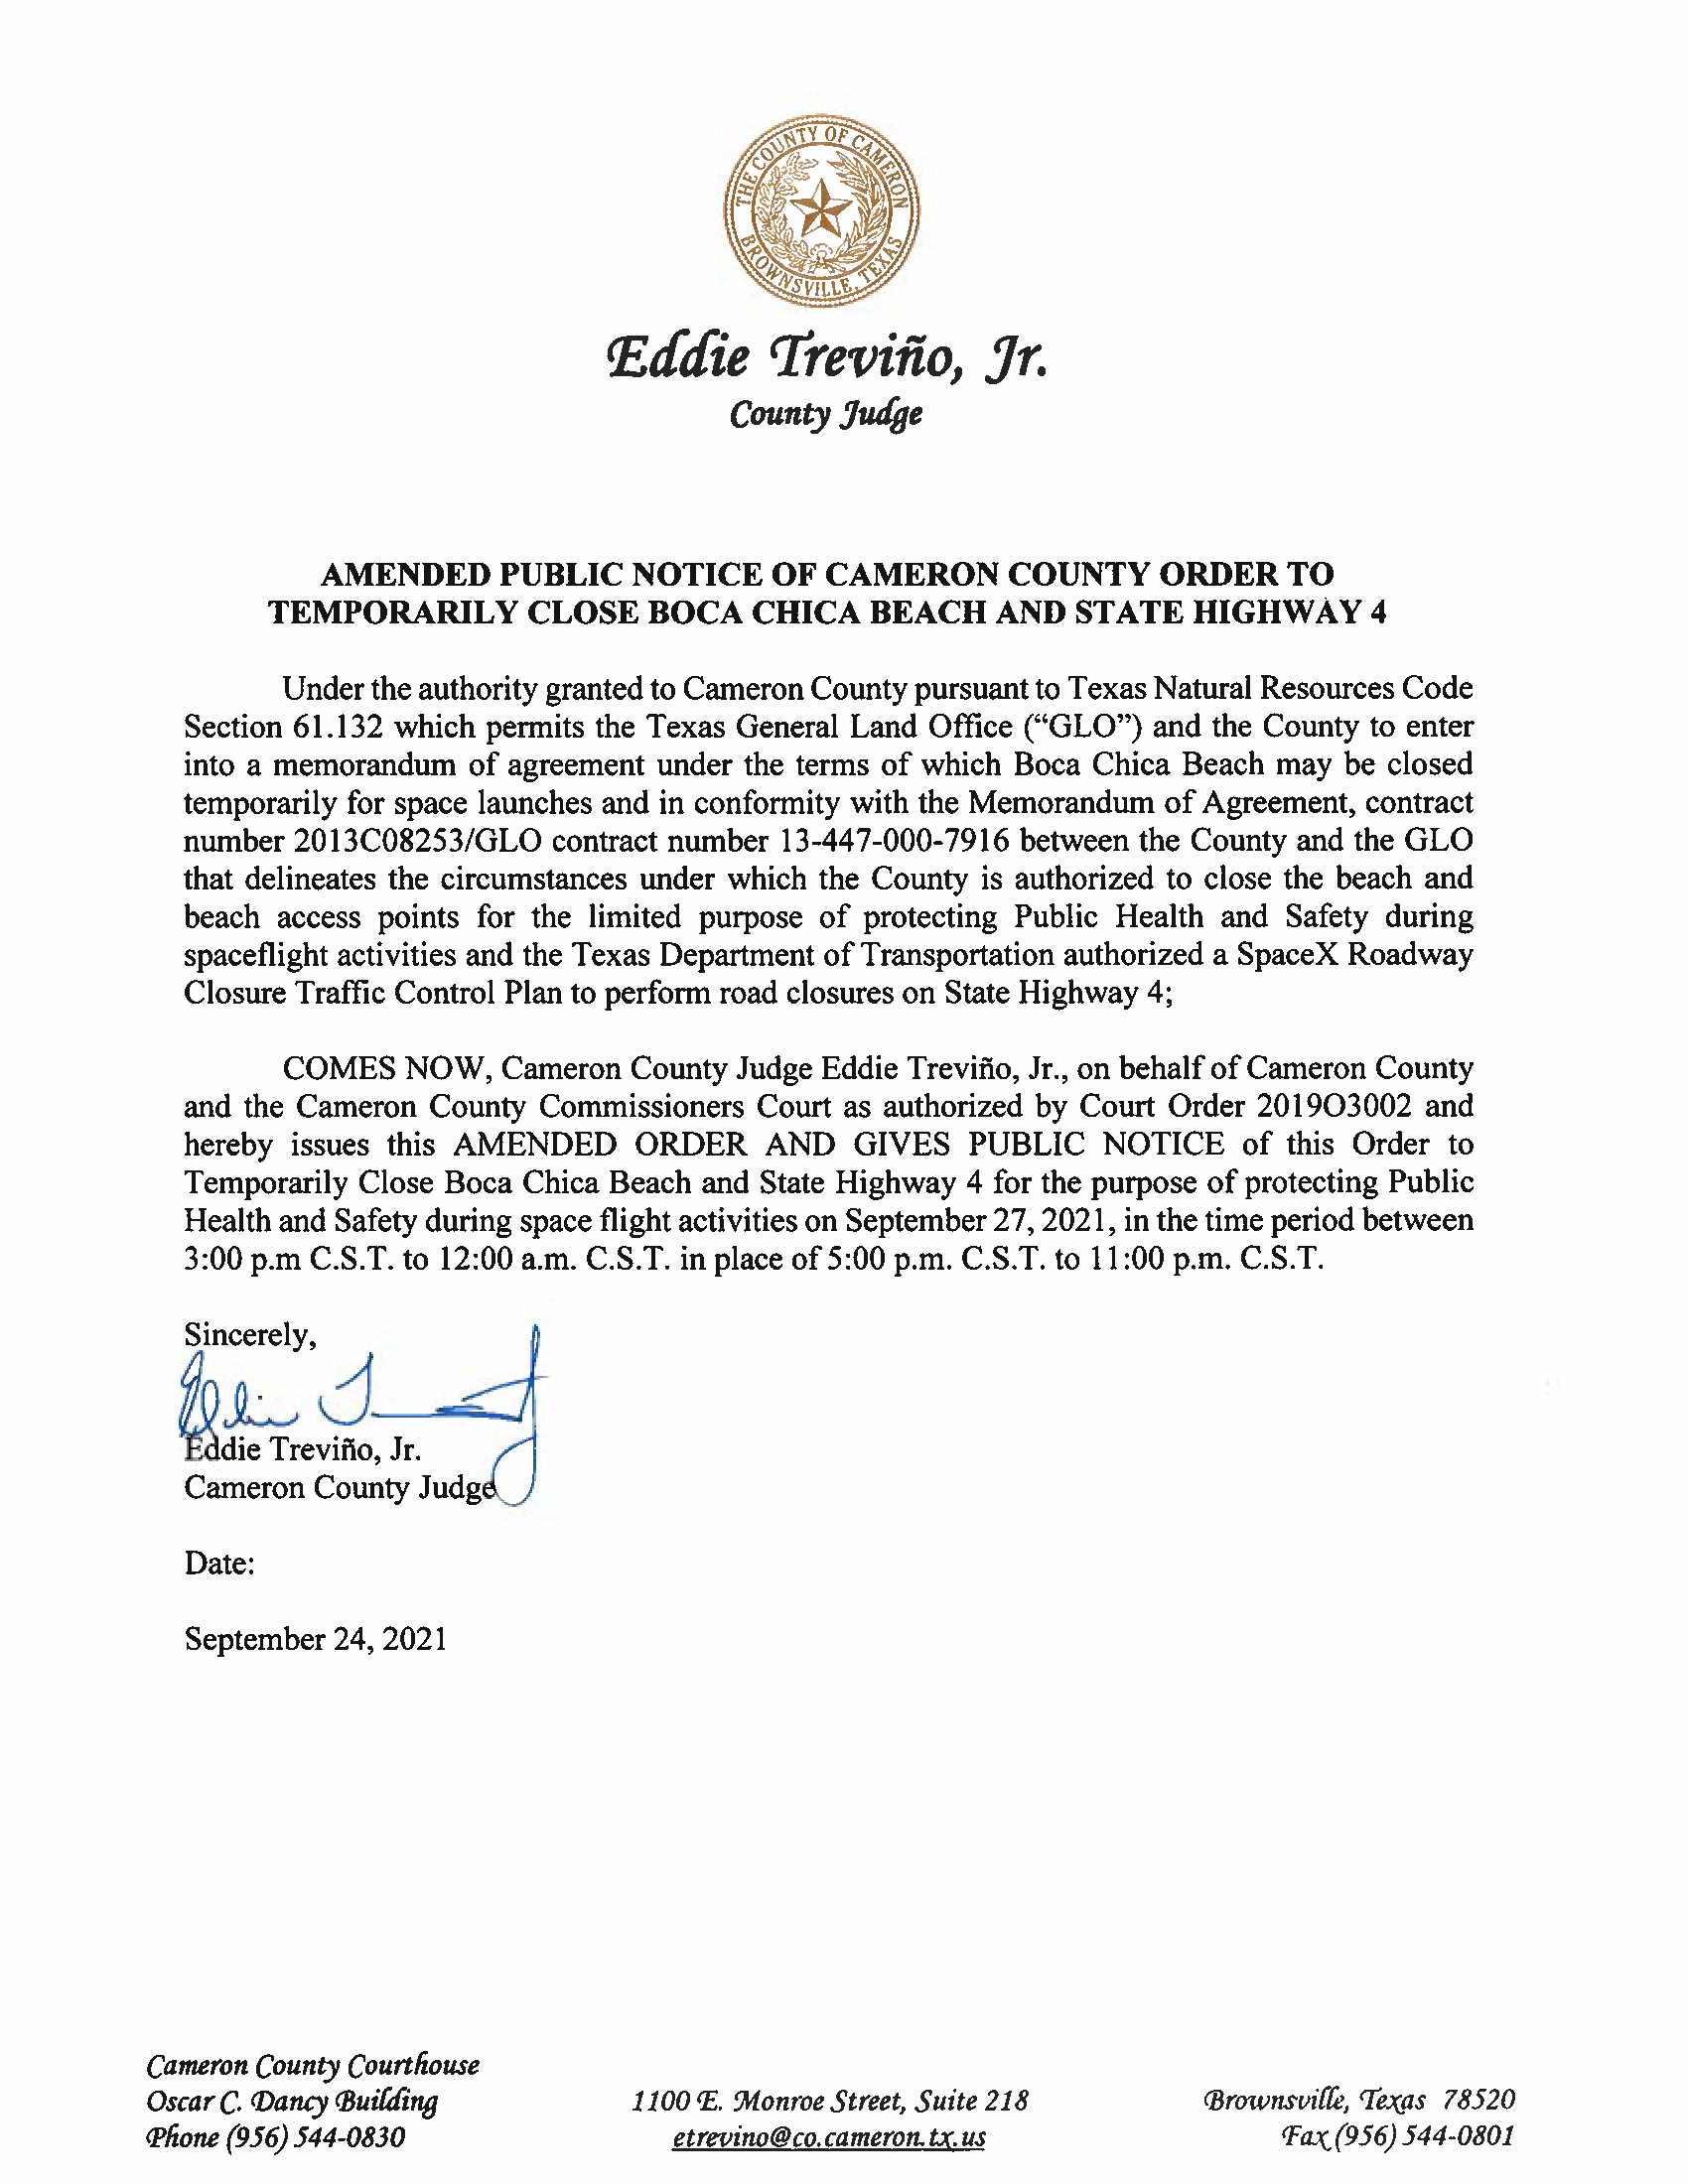 AMENDMENT PUBLIC NOTICE OF CAMERON COUNTY ORDER TO TEMP. BEACH CLOSURE AND HWY.09.27.2021